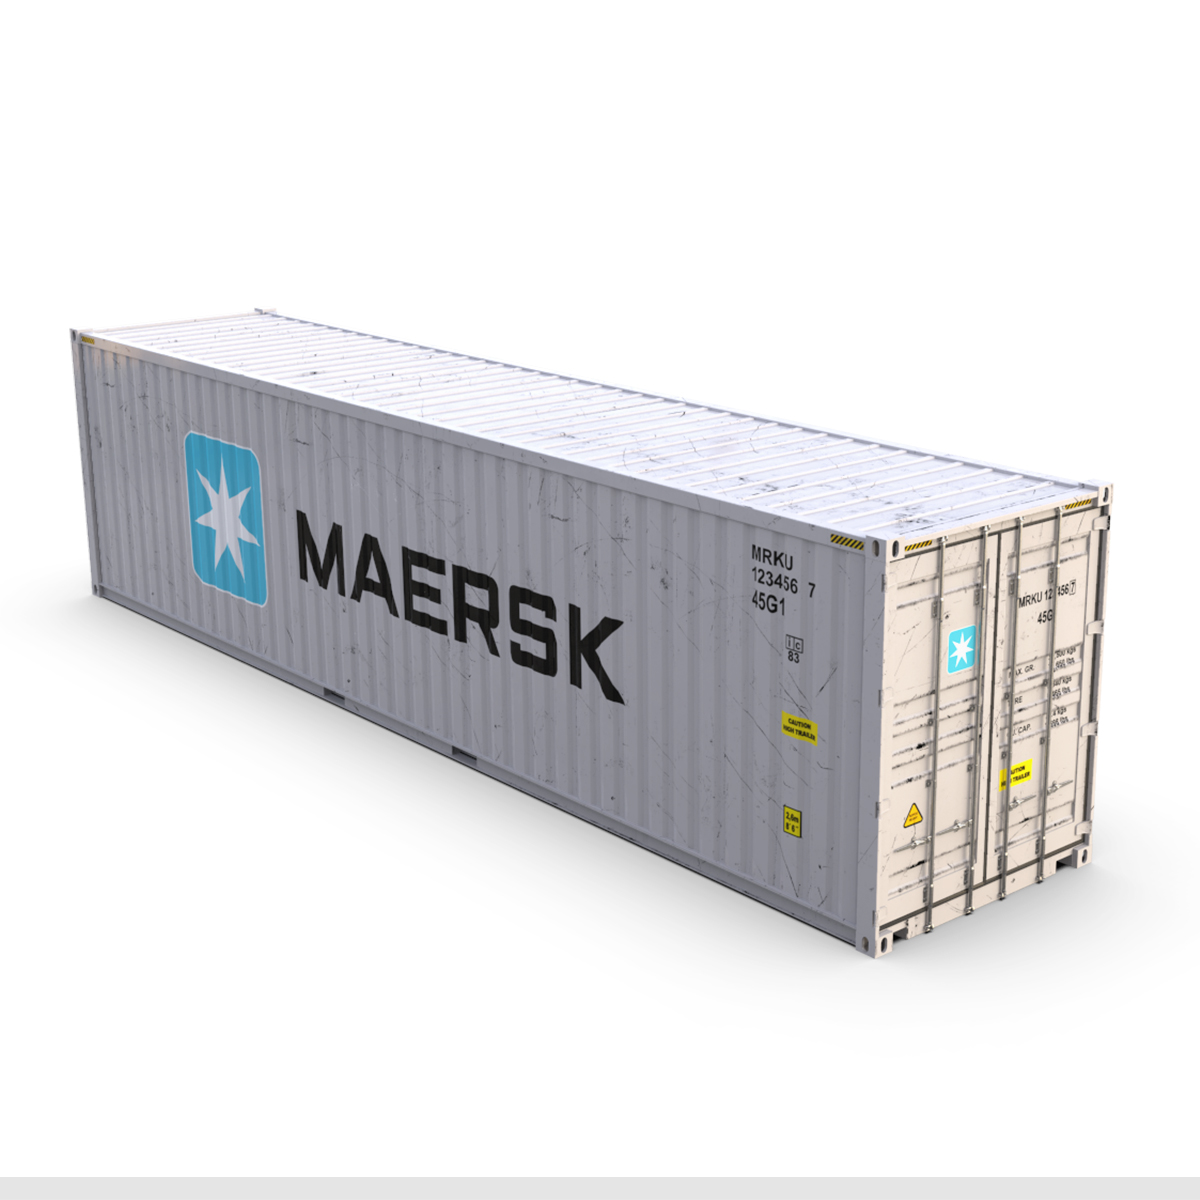 40 feet high cube maersk shipping container 3d model max fbx ma mb texture obj 278429